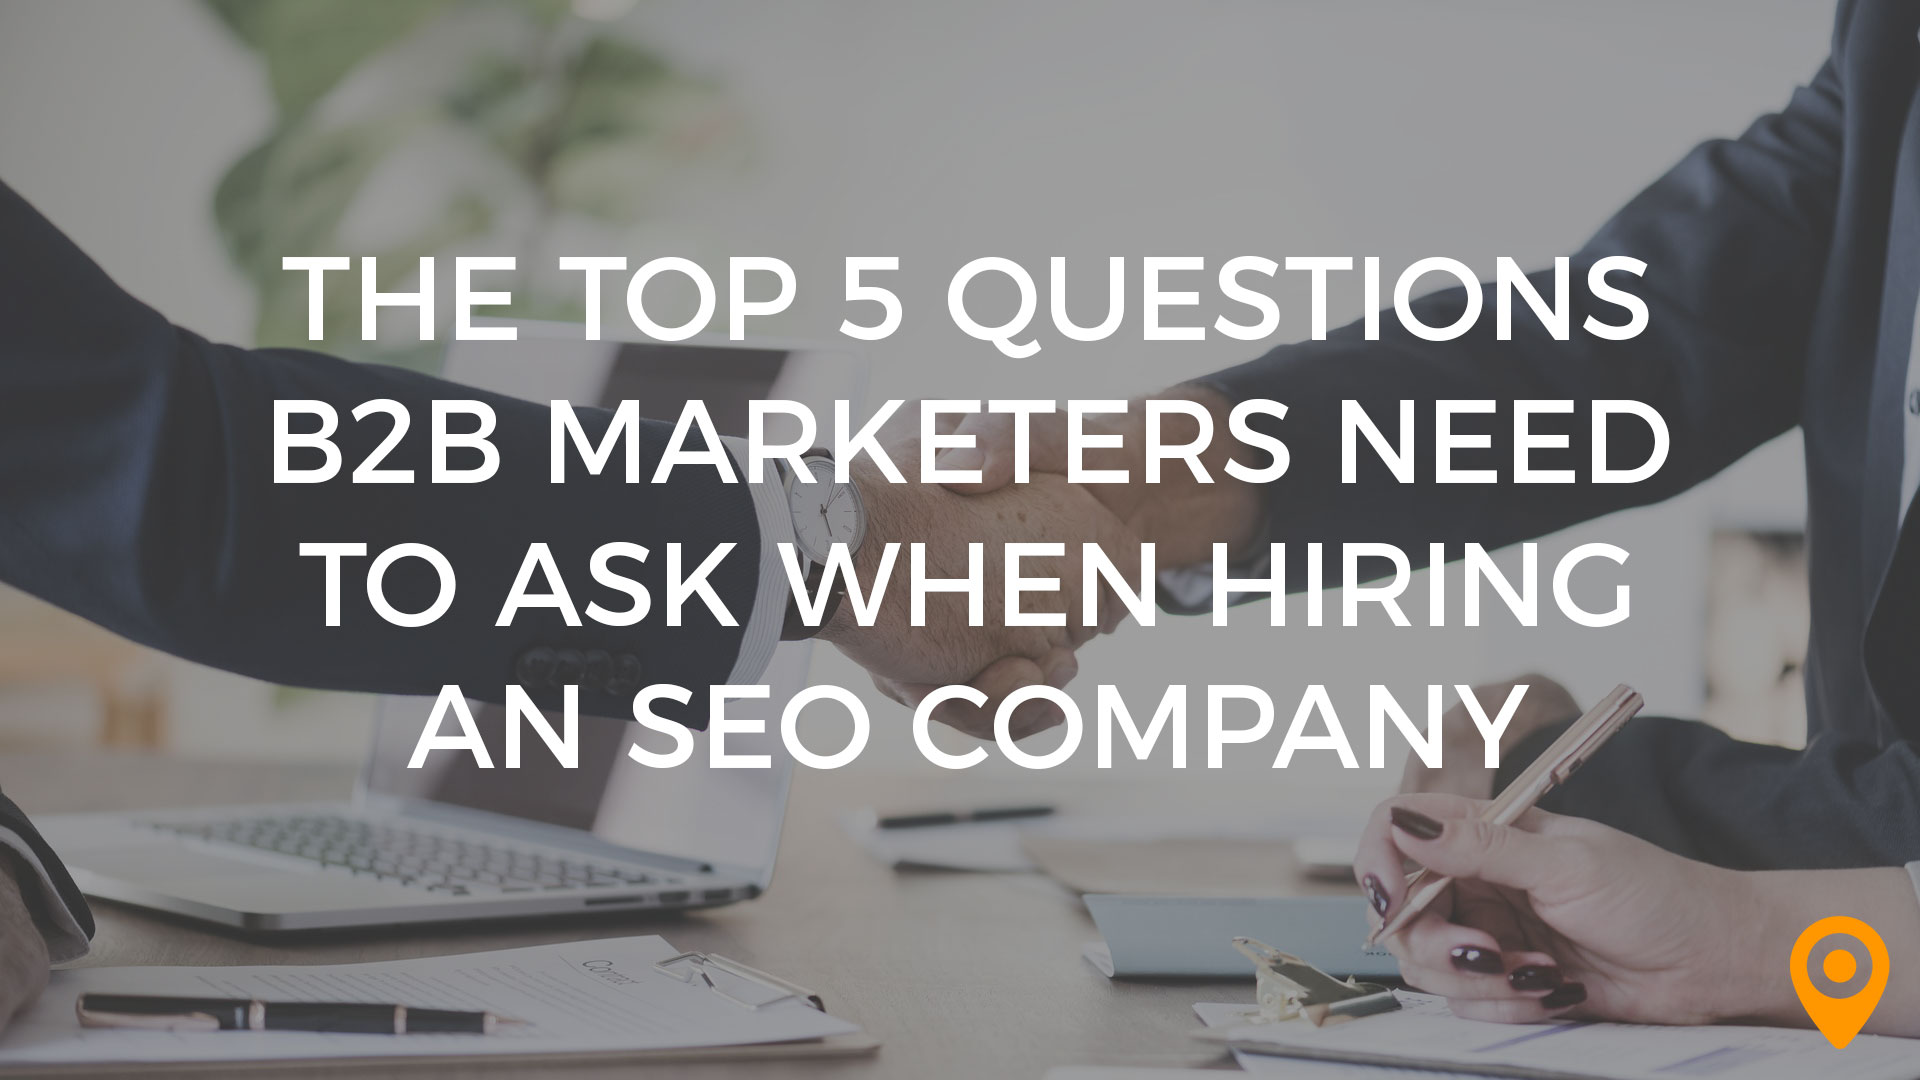 B2B Marketers and SEO